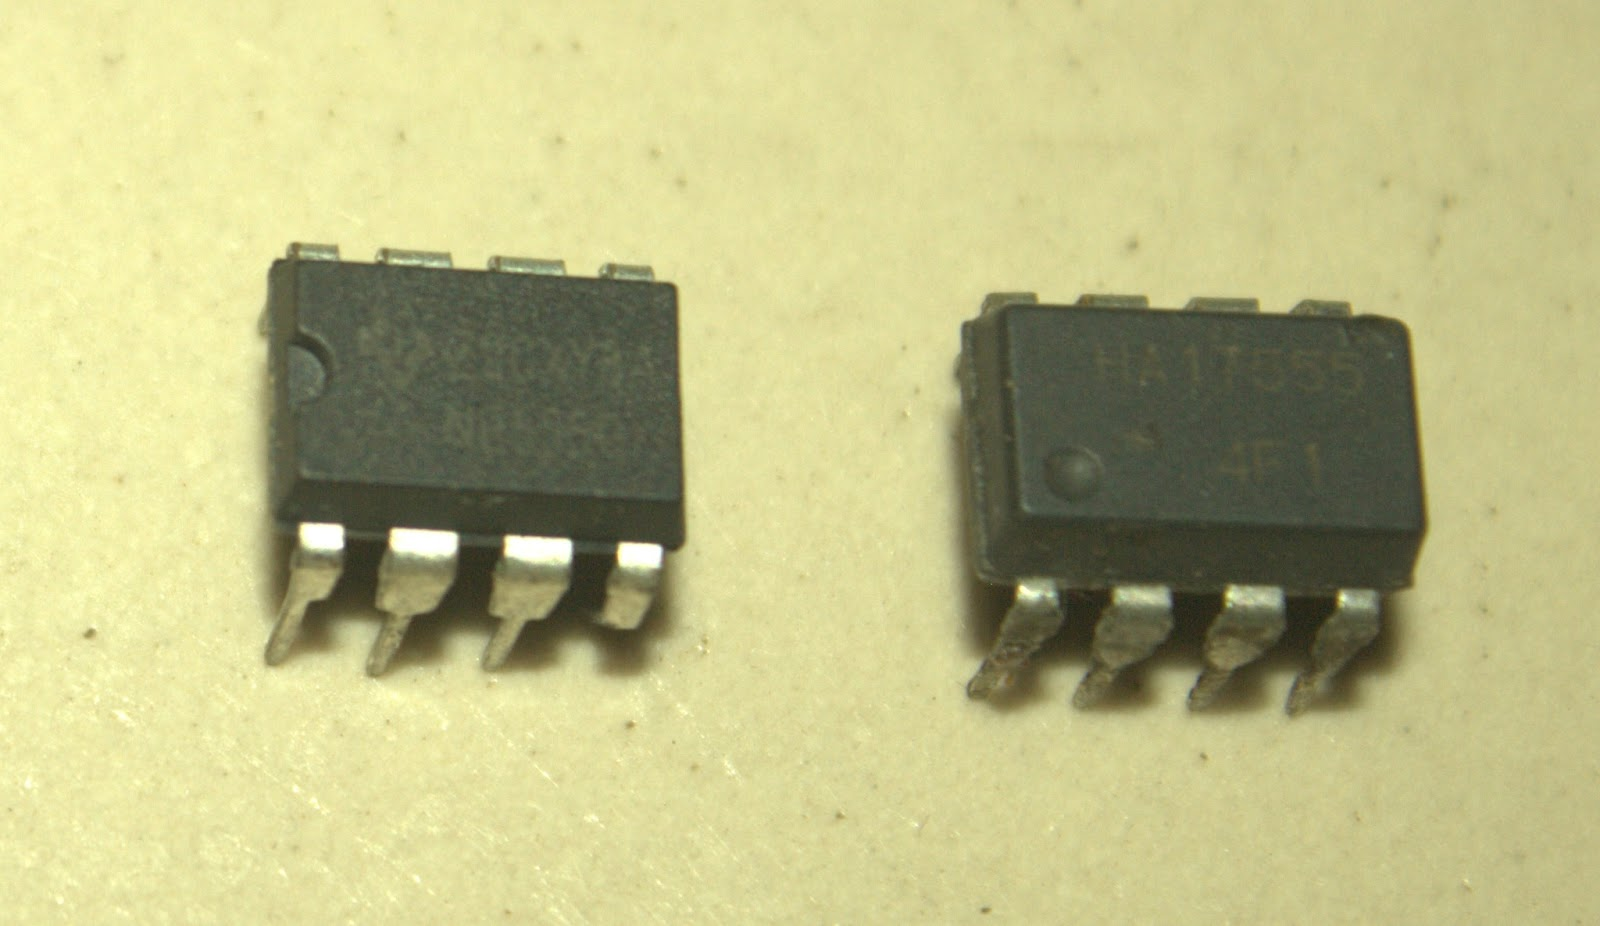 Scavengers Blog Led Flasher Using 555 Timer Ic Hobby Electronics Circuit Simple The Left One Is Ne555 Analog Right Ha 7555 Which Digital More Accurate Has Higher Voltage Range